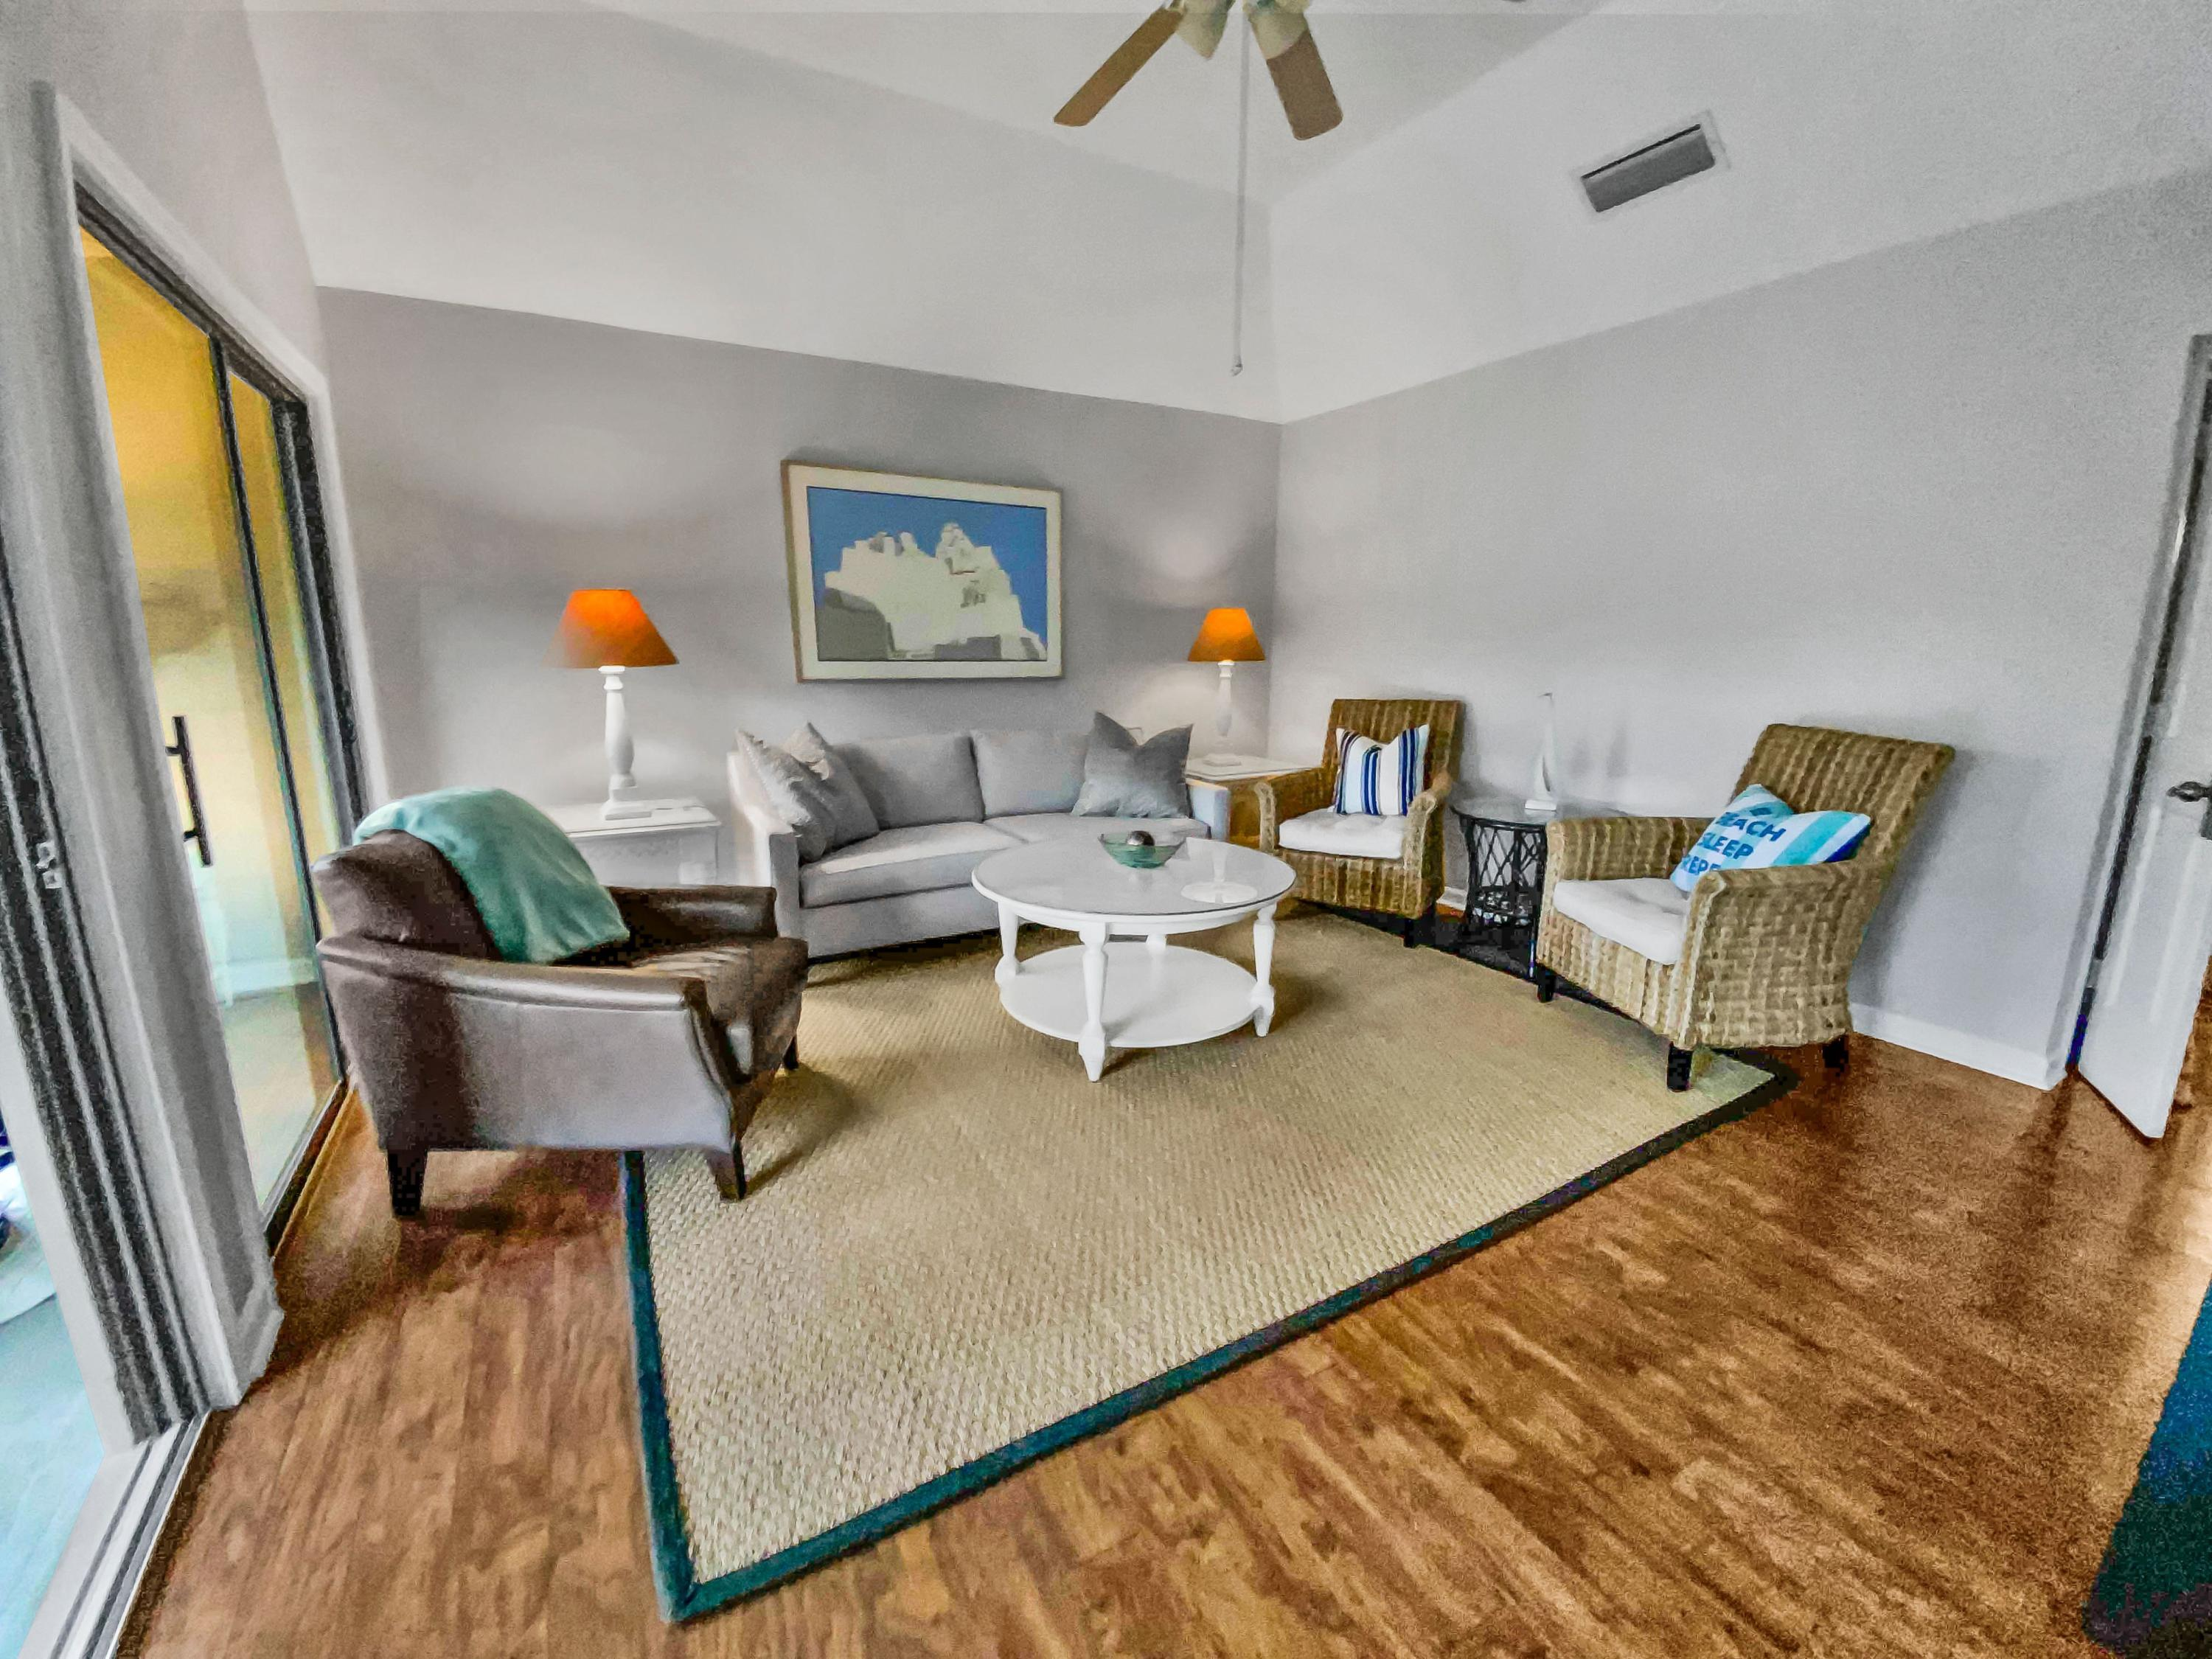 Kiawah Island Condos For Sale - 4676 Tennis Club Villas, Kiawah Island, SC - 13